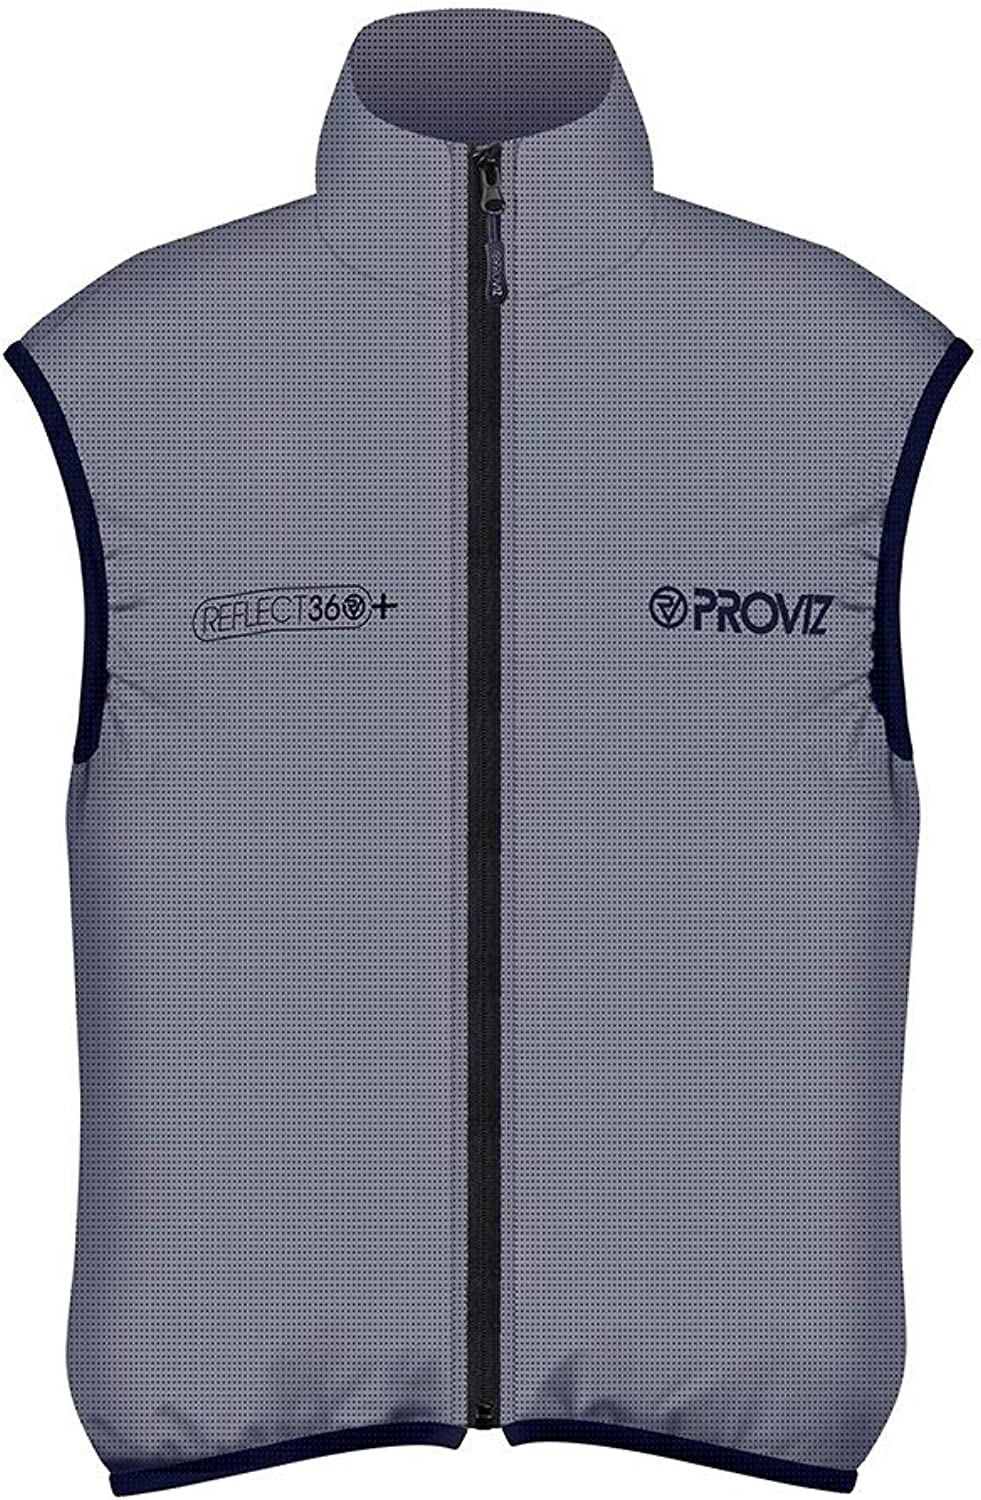 Proviz Reflect360+ Women's Reflective Cycling Vest, Silver